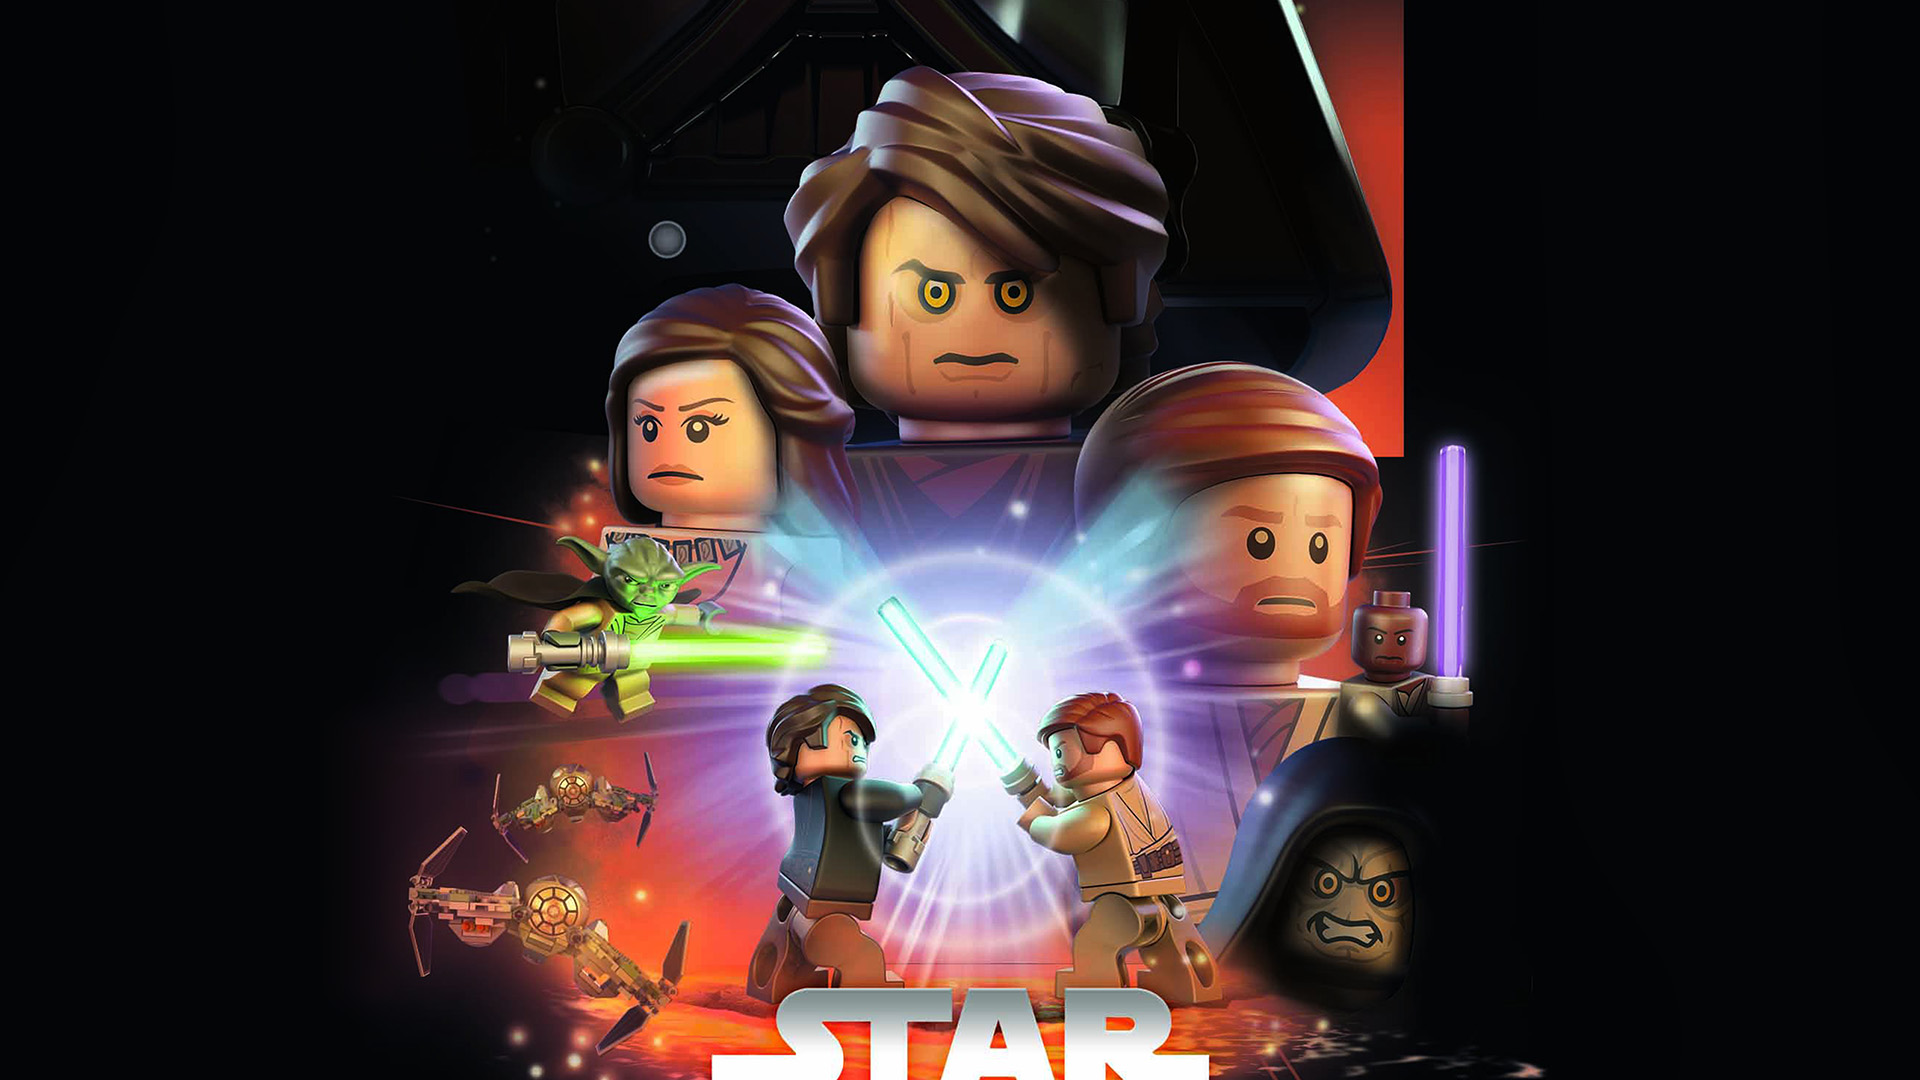 Wallpaper Fall Ap22 Starwars Lego Episode 3 Revenge Of The Sith Art Film